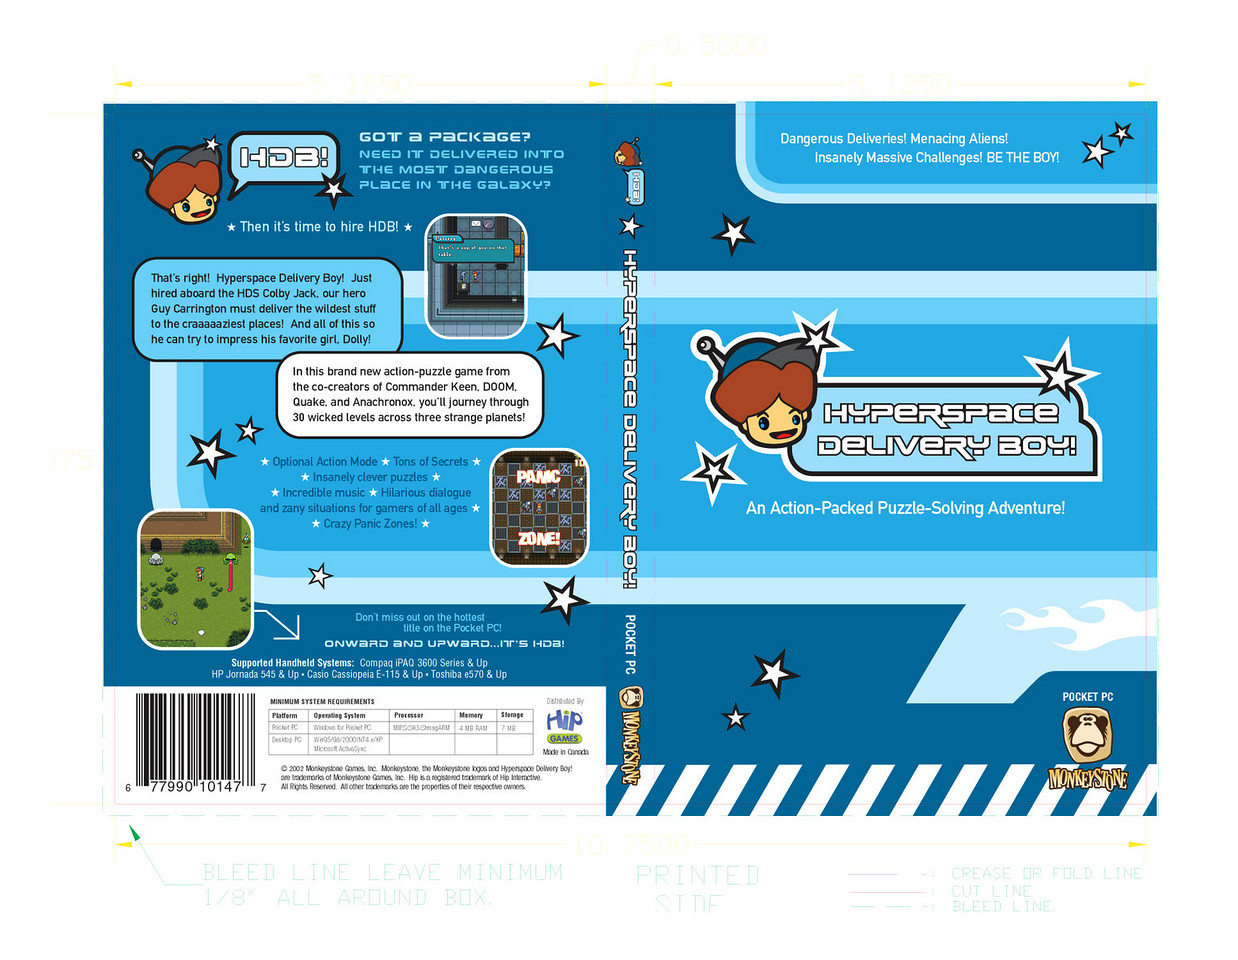 Here's the Pocket PC package design ready for printing - it fits a DVD case.